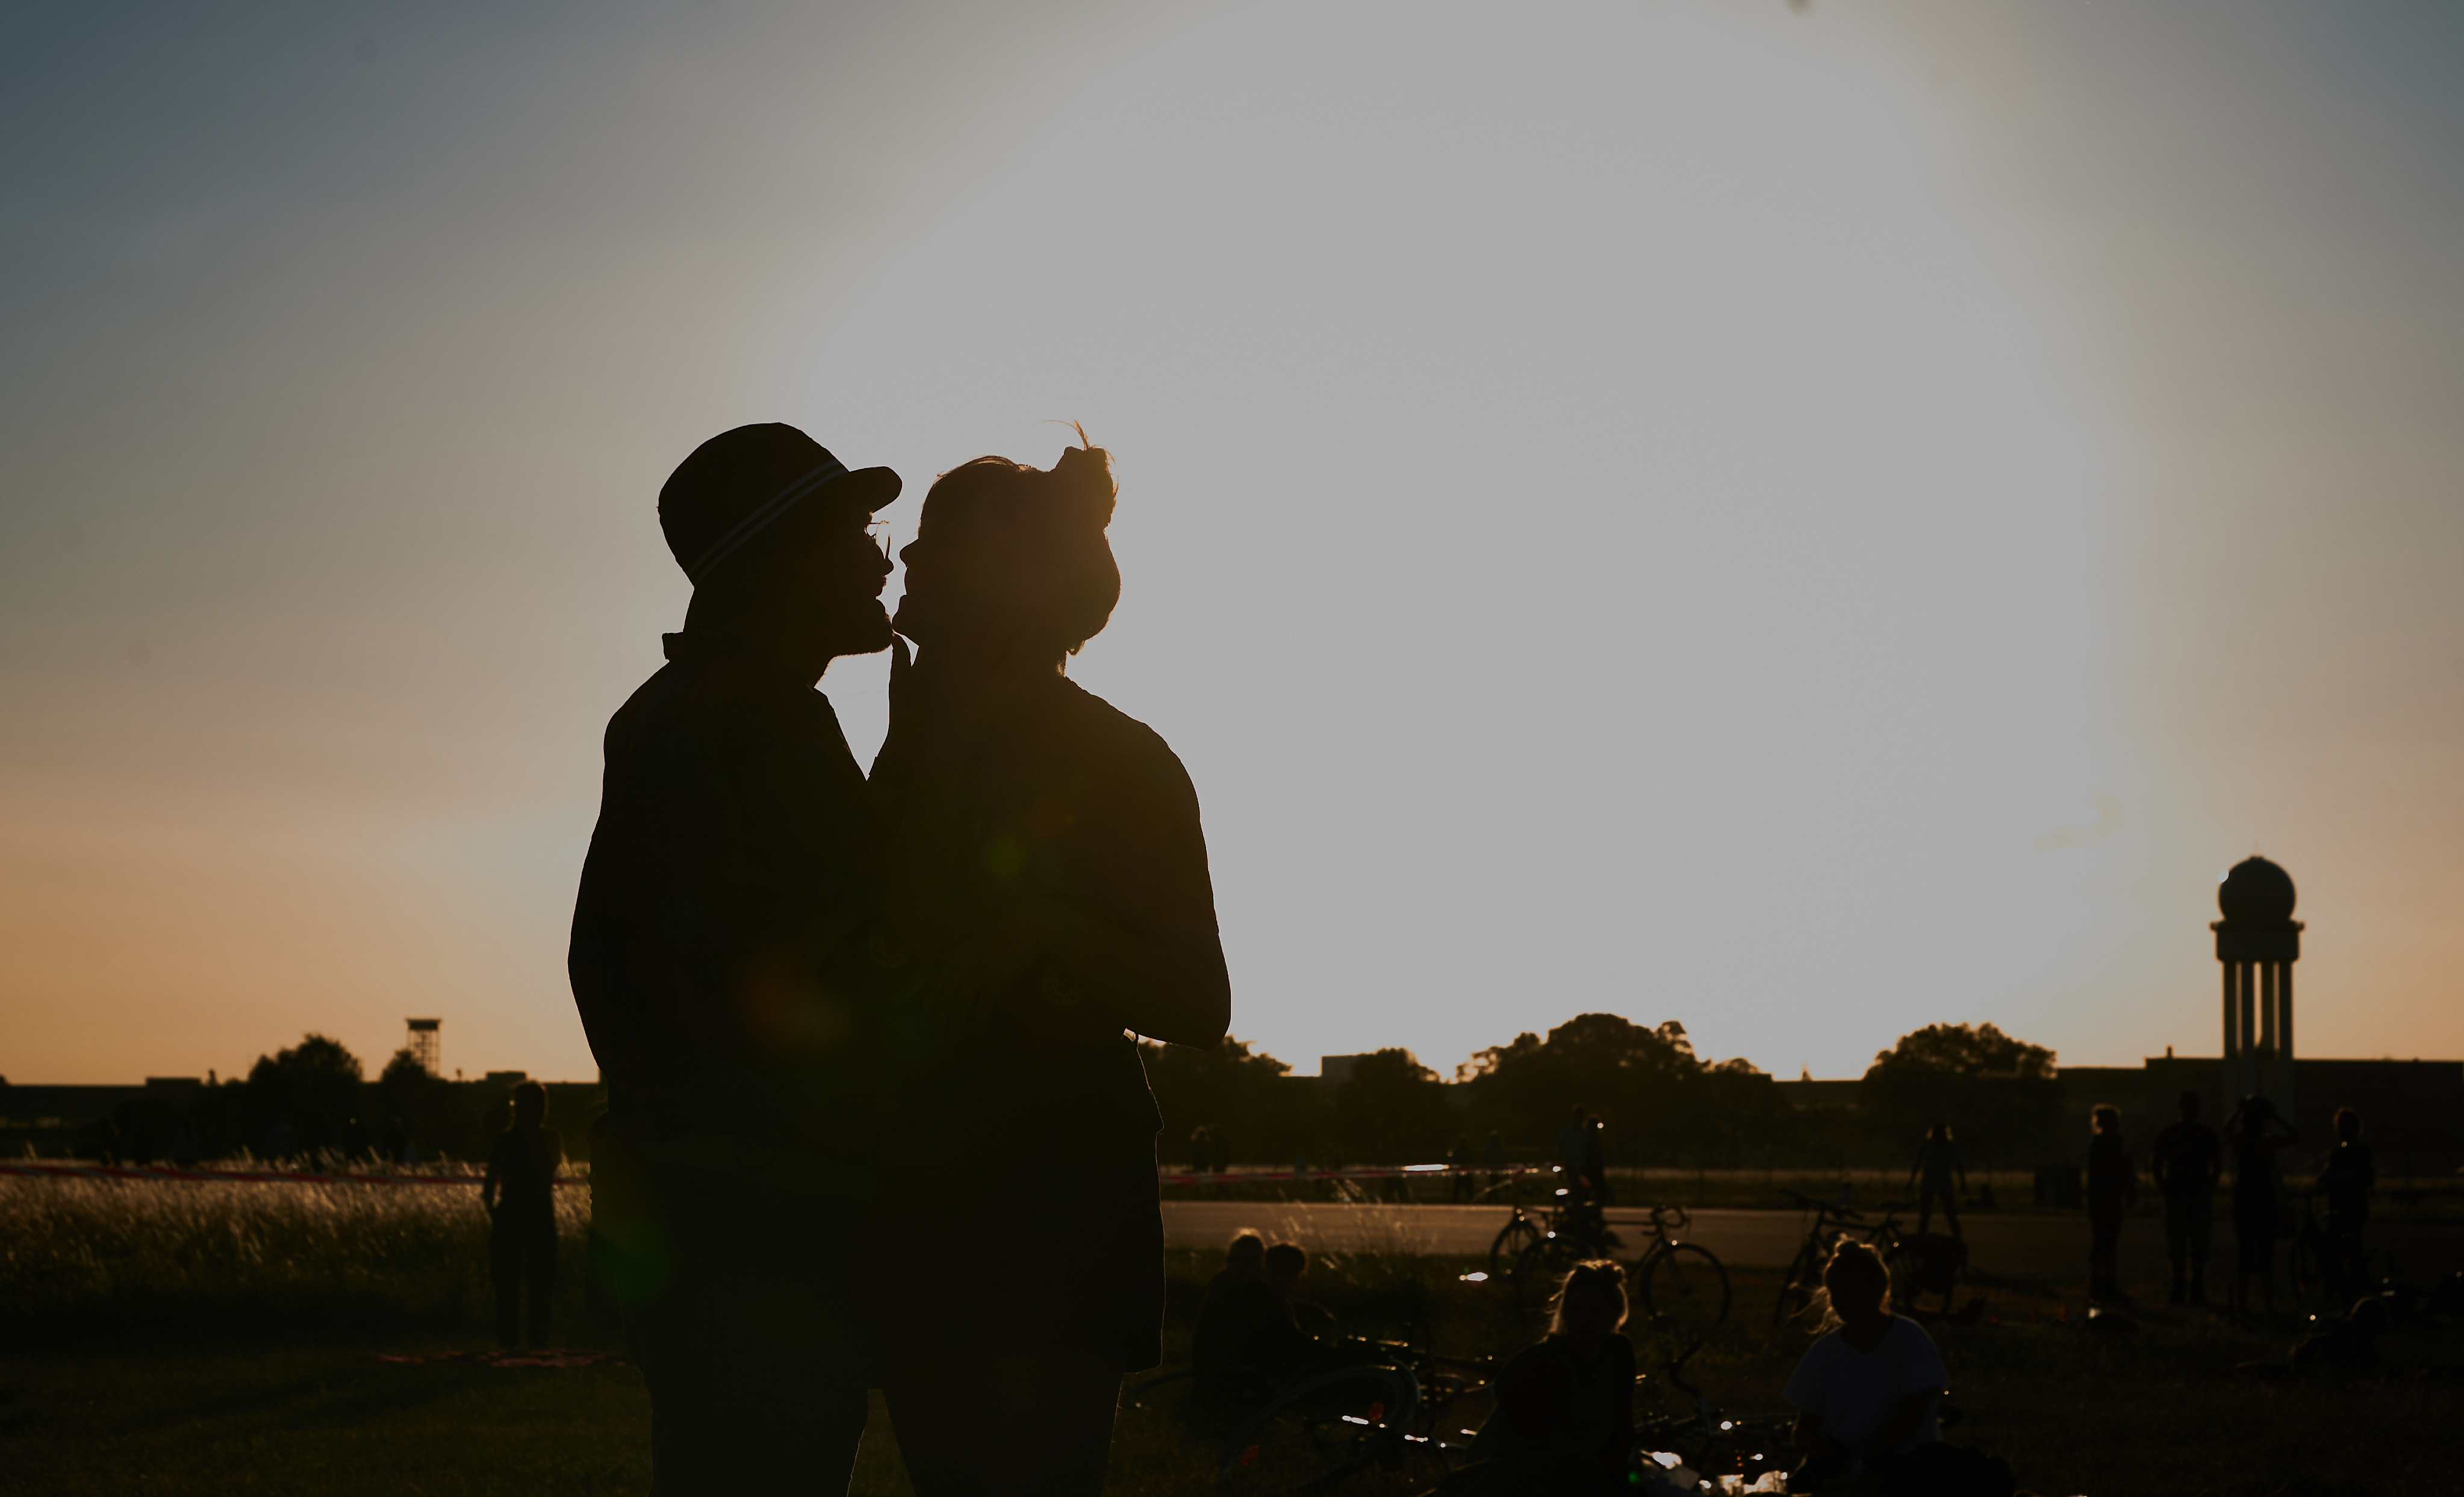 A kissing couple silhouetted against a twilit sky.